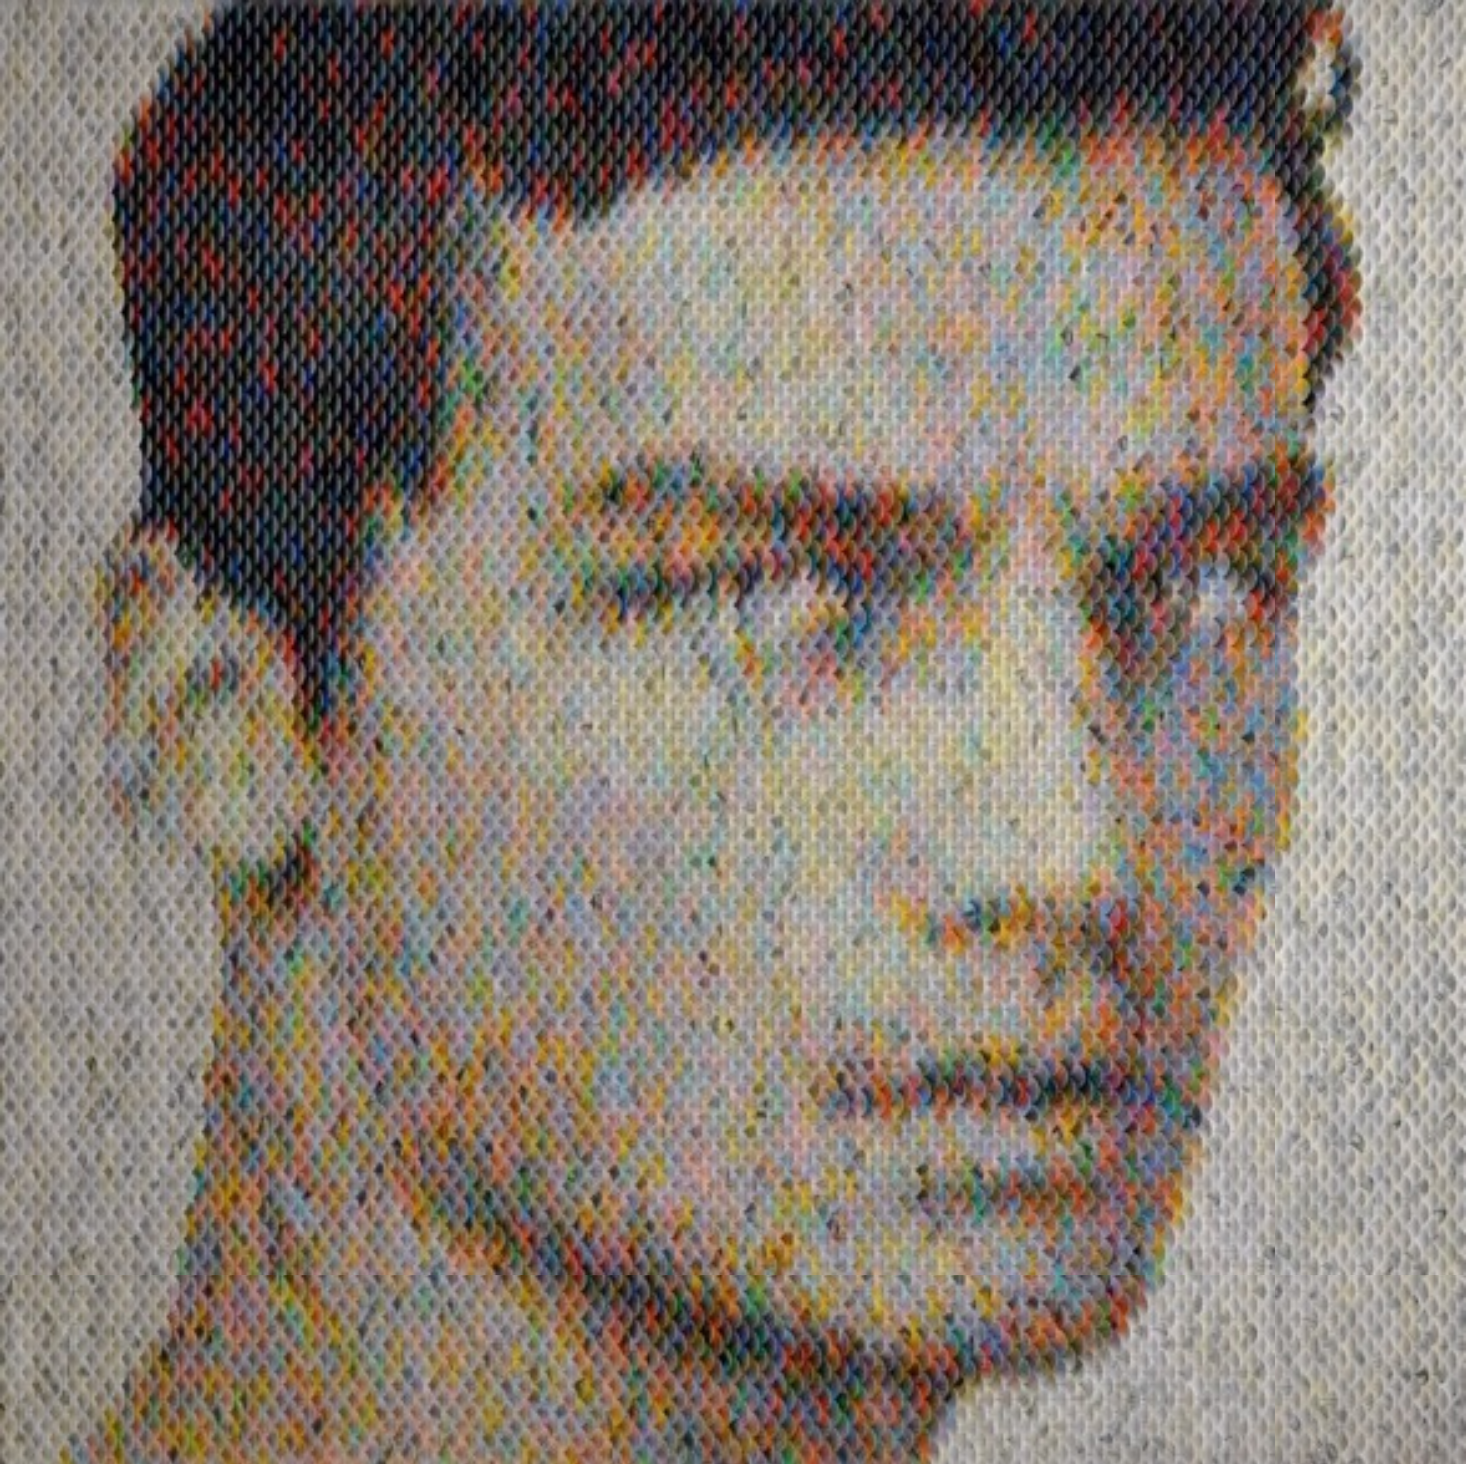 New Portraits Made From Hundreds of Punched Paint Chips - Bacchus